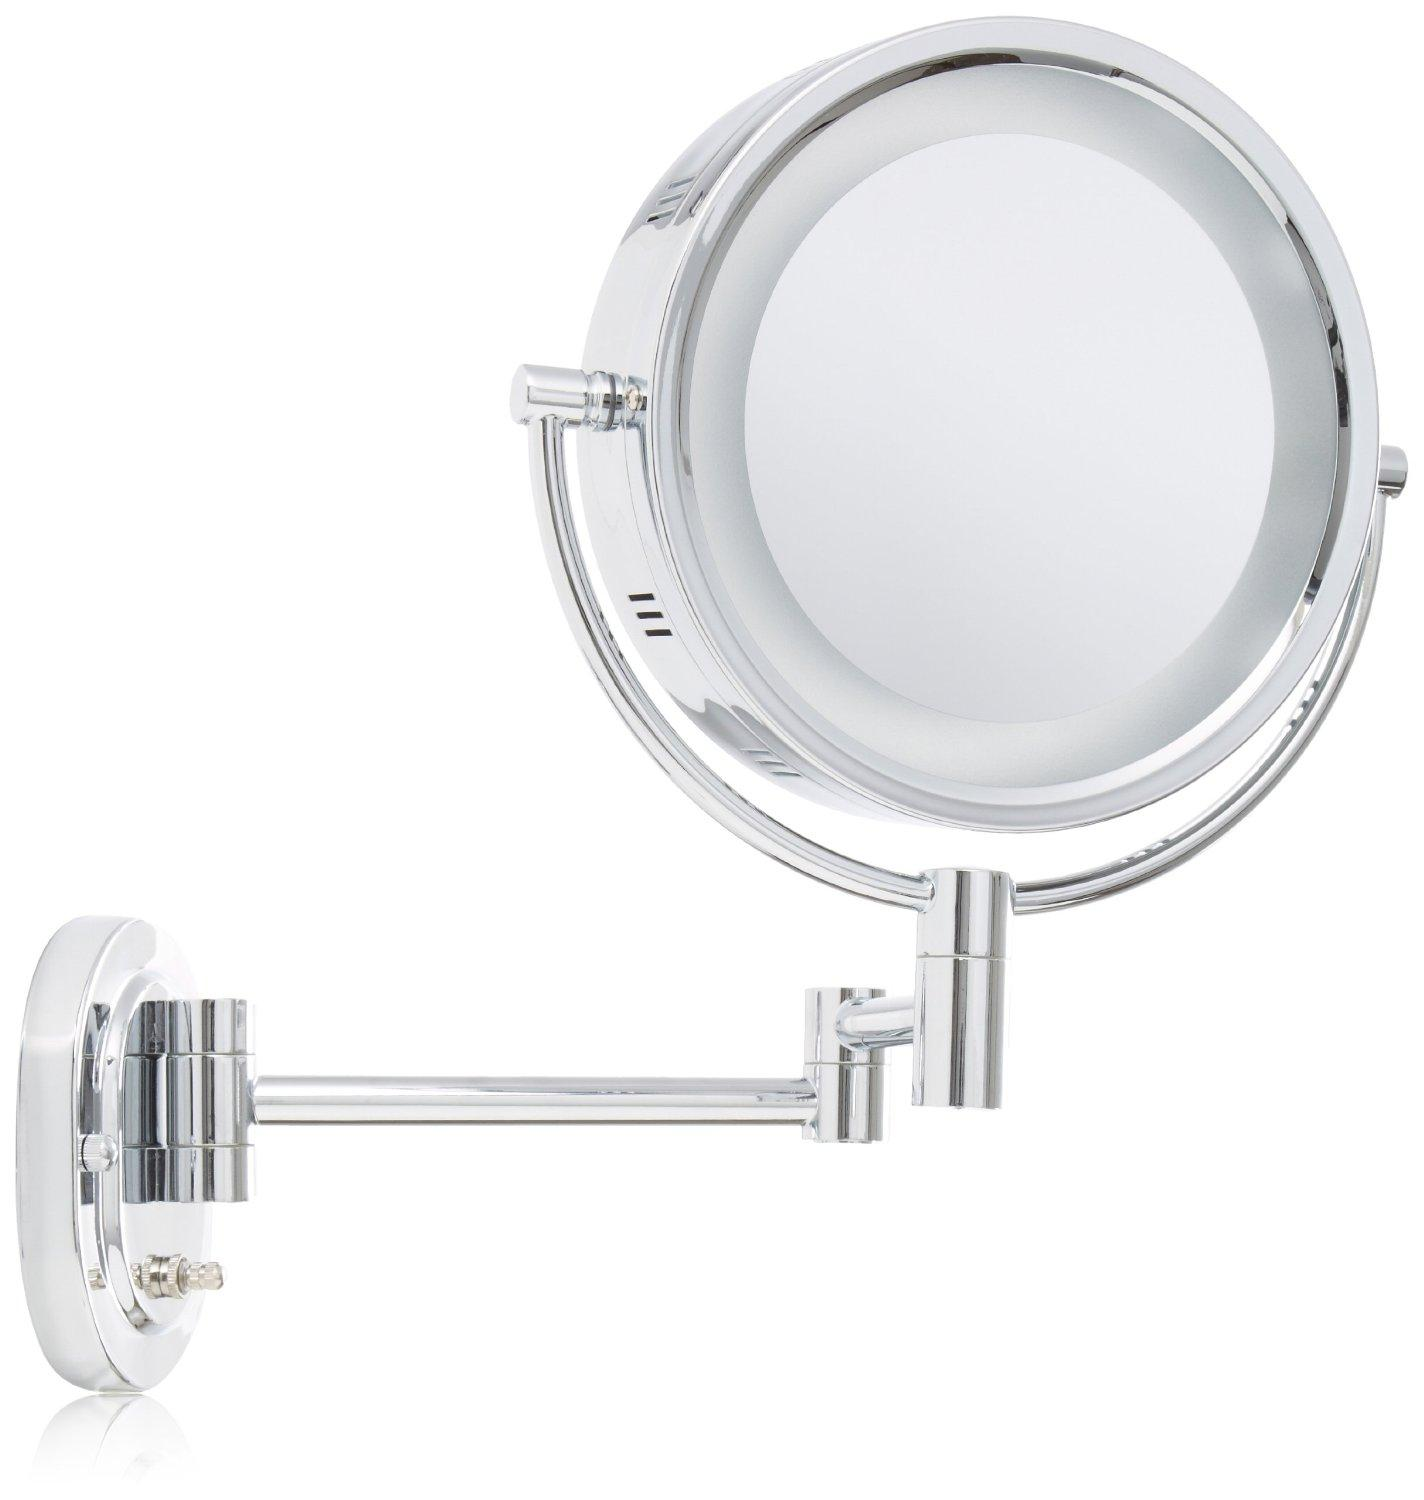 Amazon jerdon hl65c 8 inch lighted wall mount makeup mirror view larger amipublicfo Choice Image